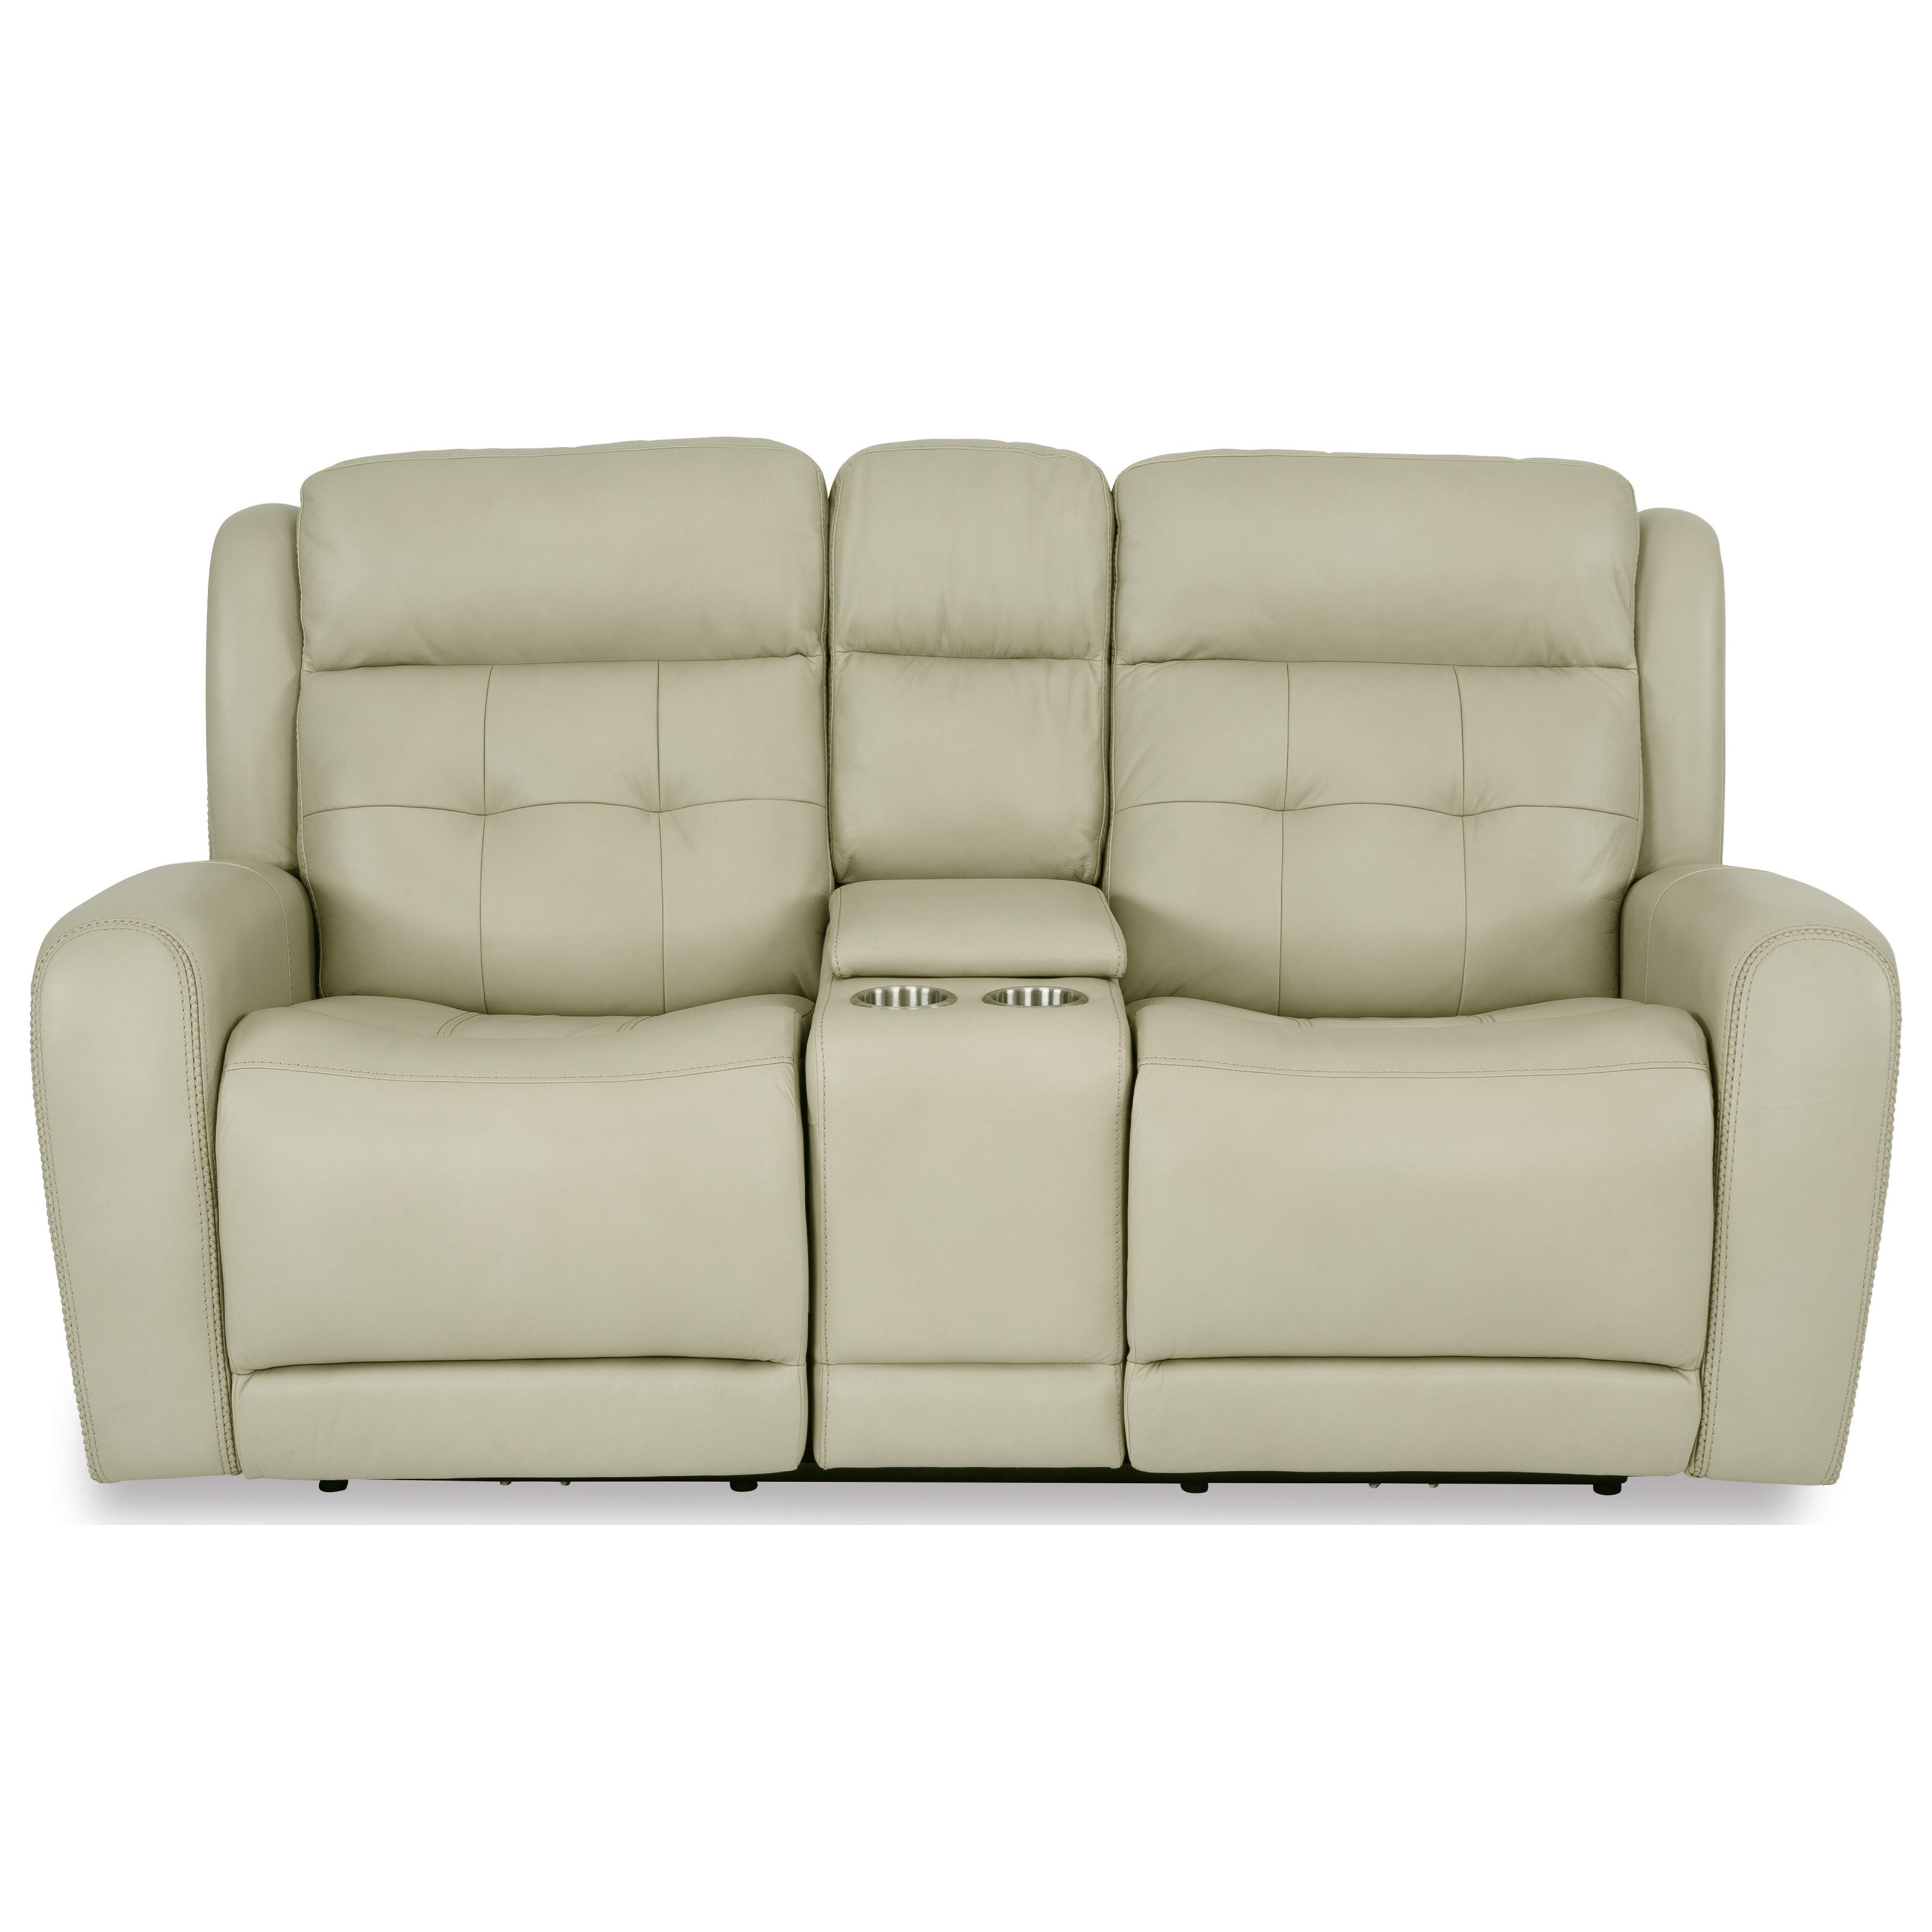 Latitudes - Grant Power Reclining Console Loveseat by Flexsteel at Crowley Furniture & Mattress